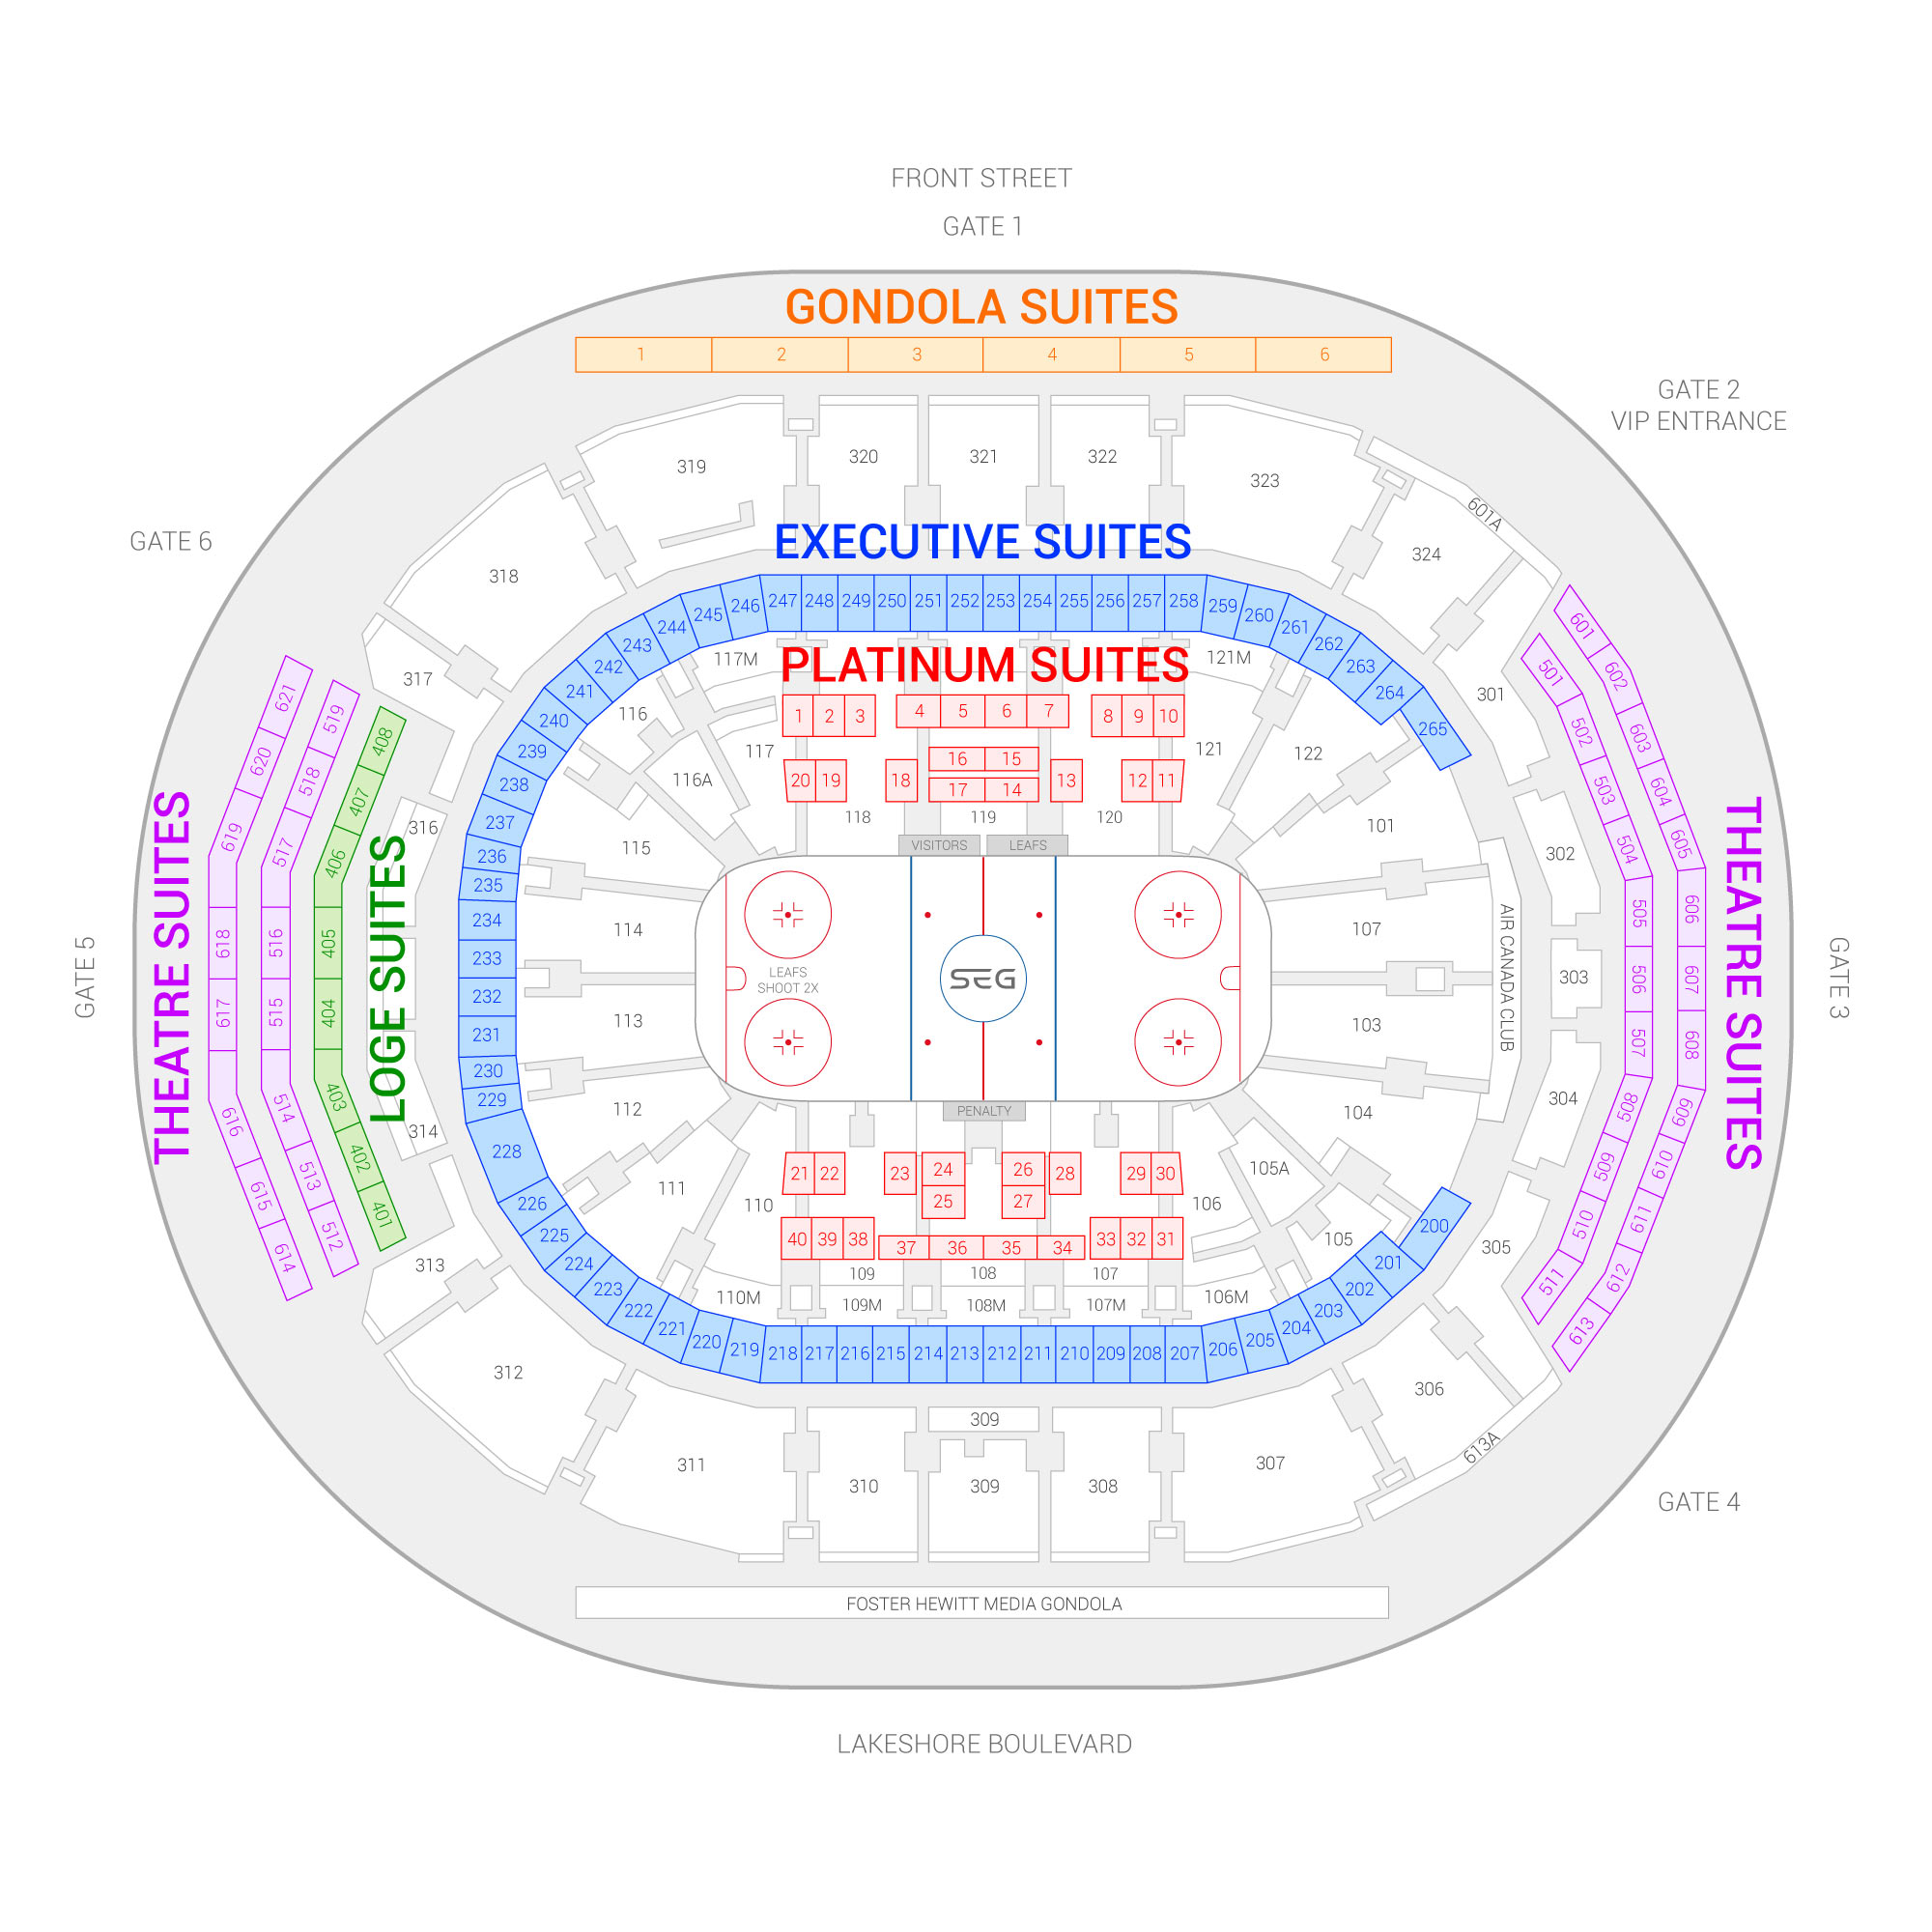 Scotiabank Arena (Formerly Air Canada Centre) / Toronto Maple Leafs Suite Map and Seating Chart